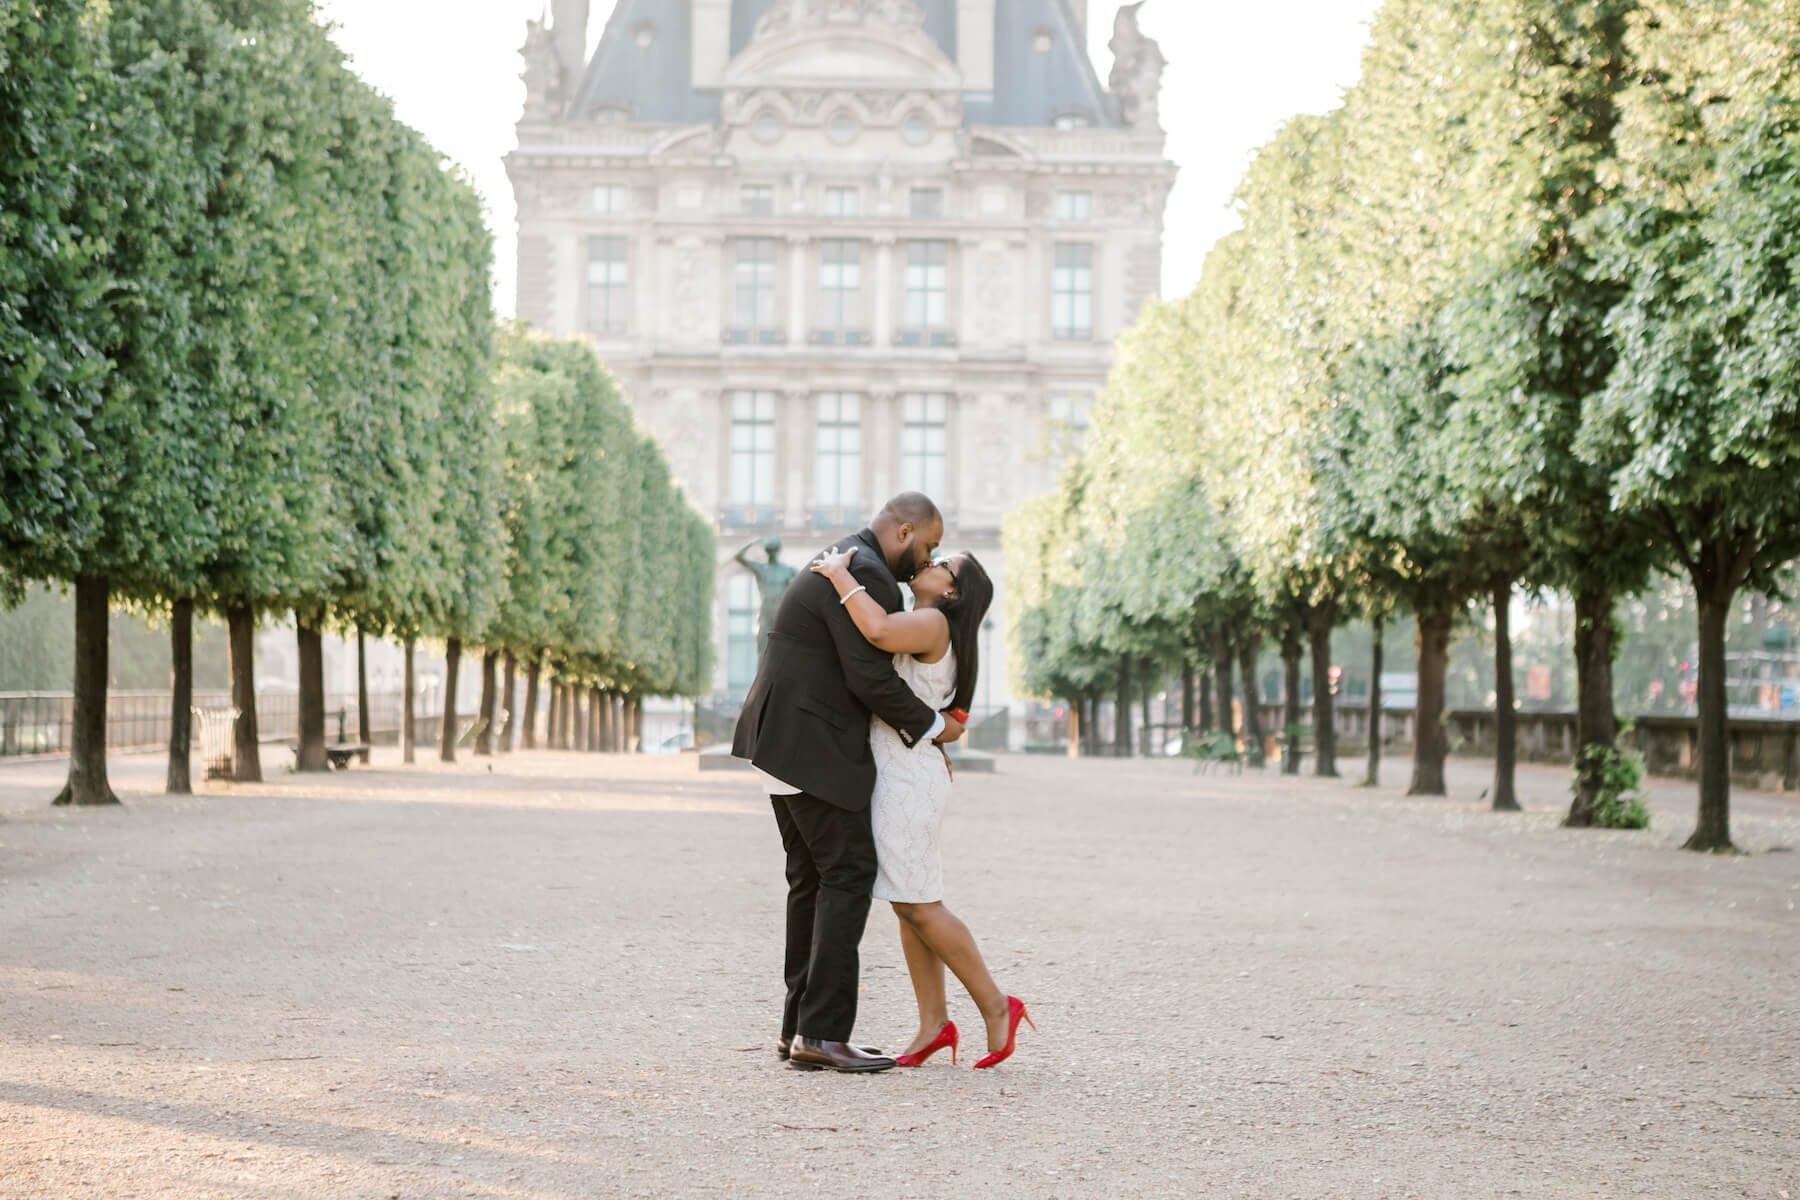 A couple kissing after a wedding proposal in Louvre grounds in Paris, France